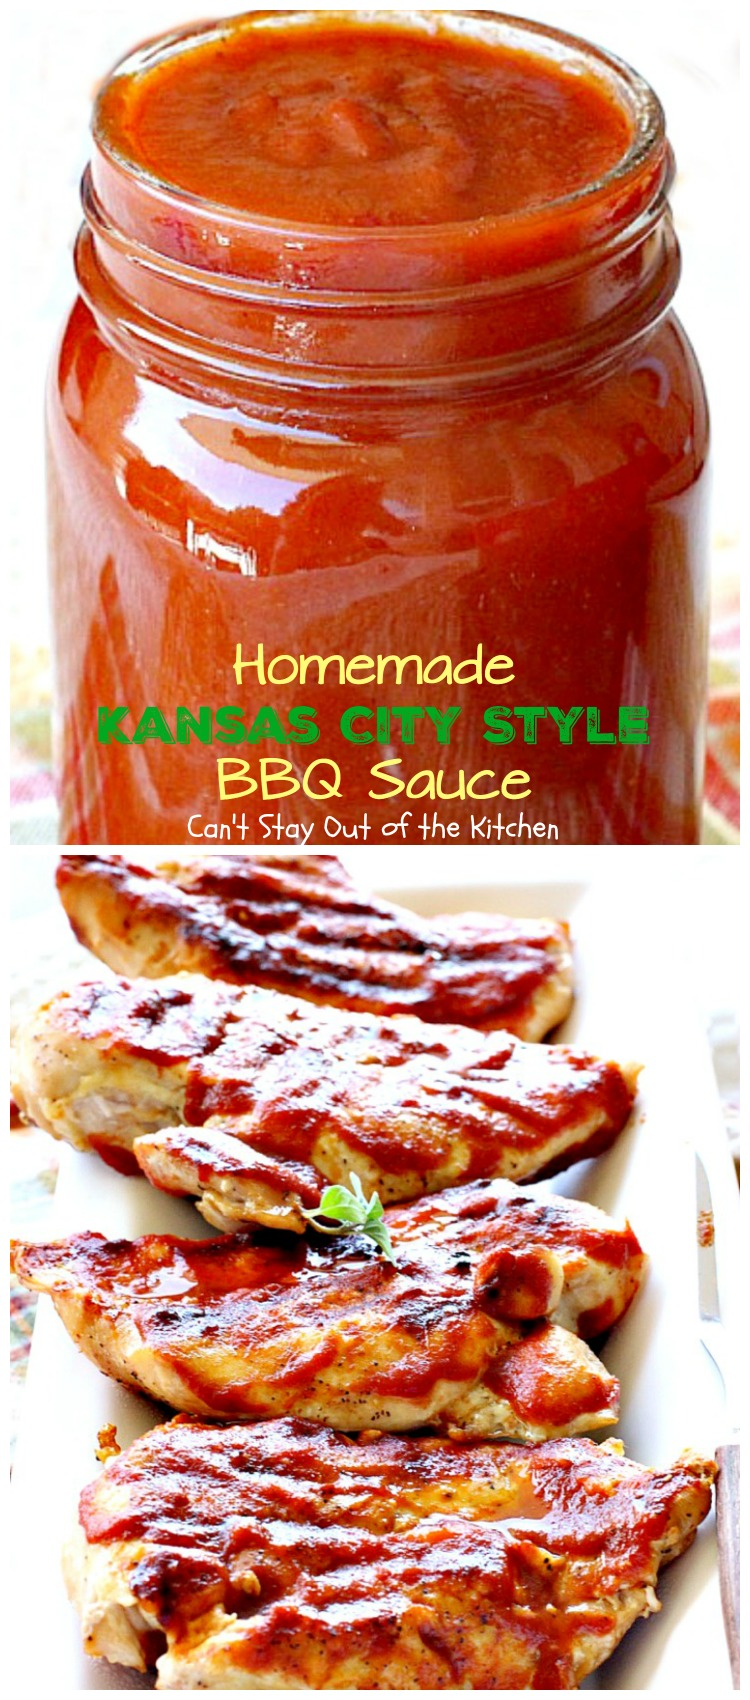 Homemade Kansas City Style BBQ Sauce - Can't Stay Out of ...